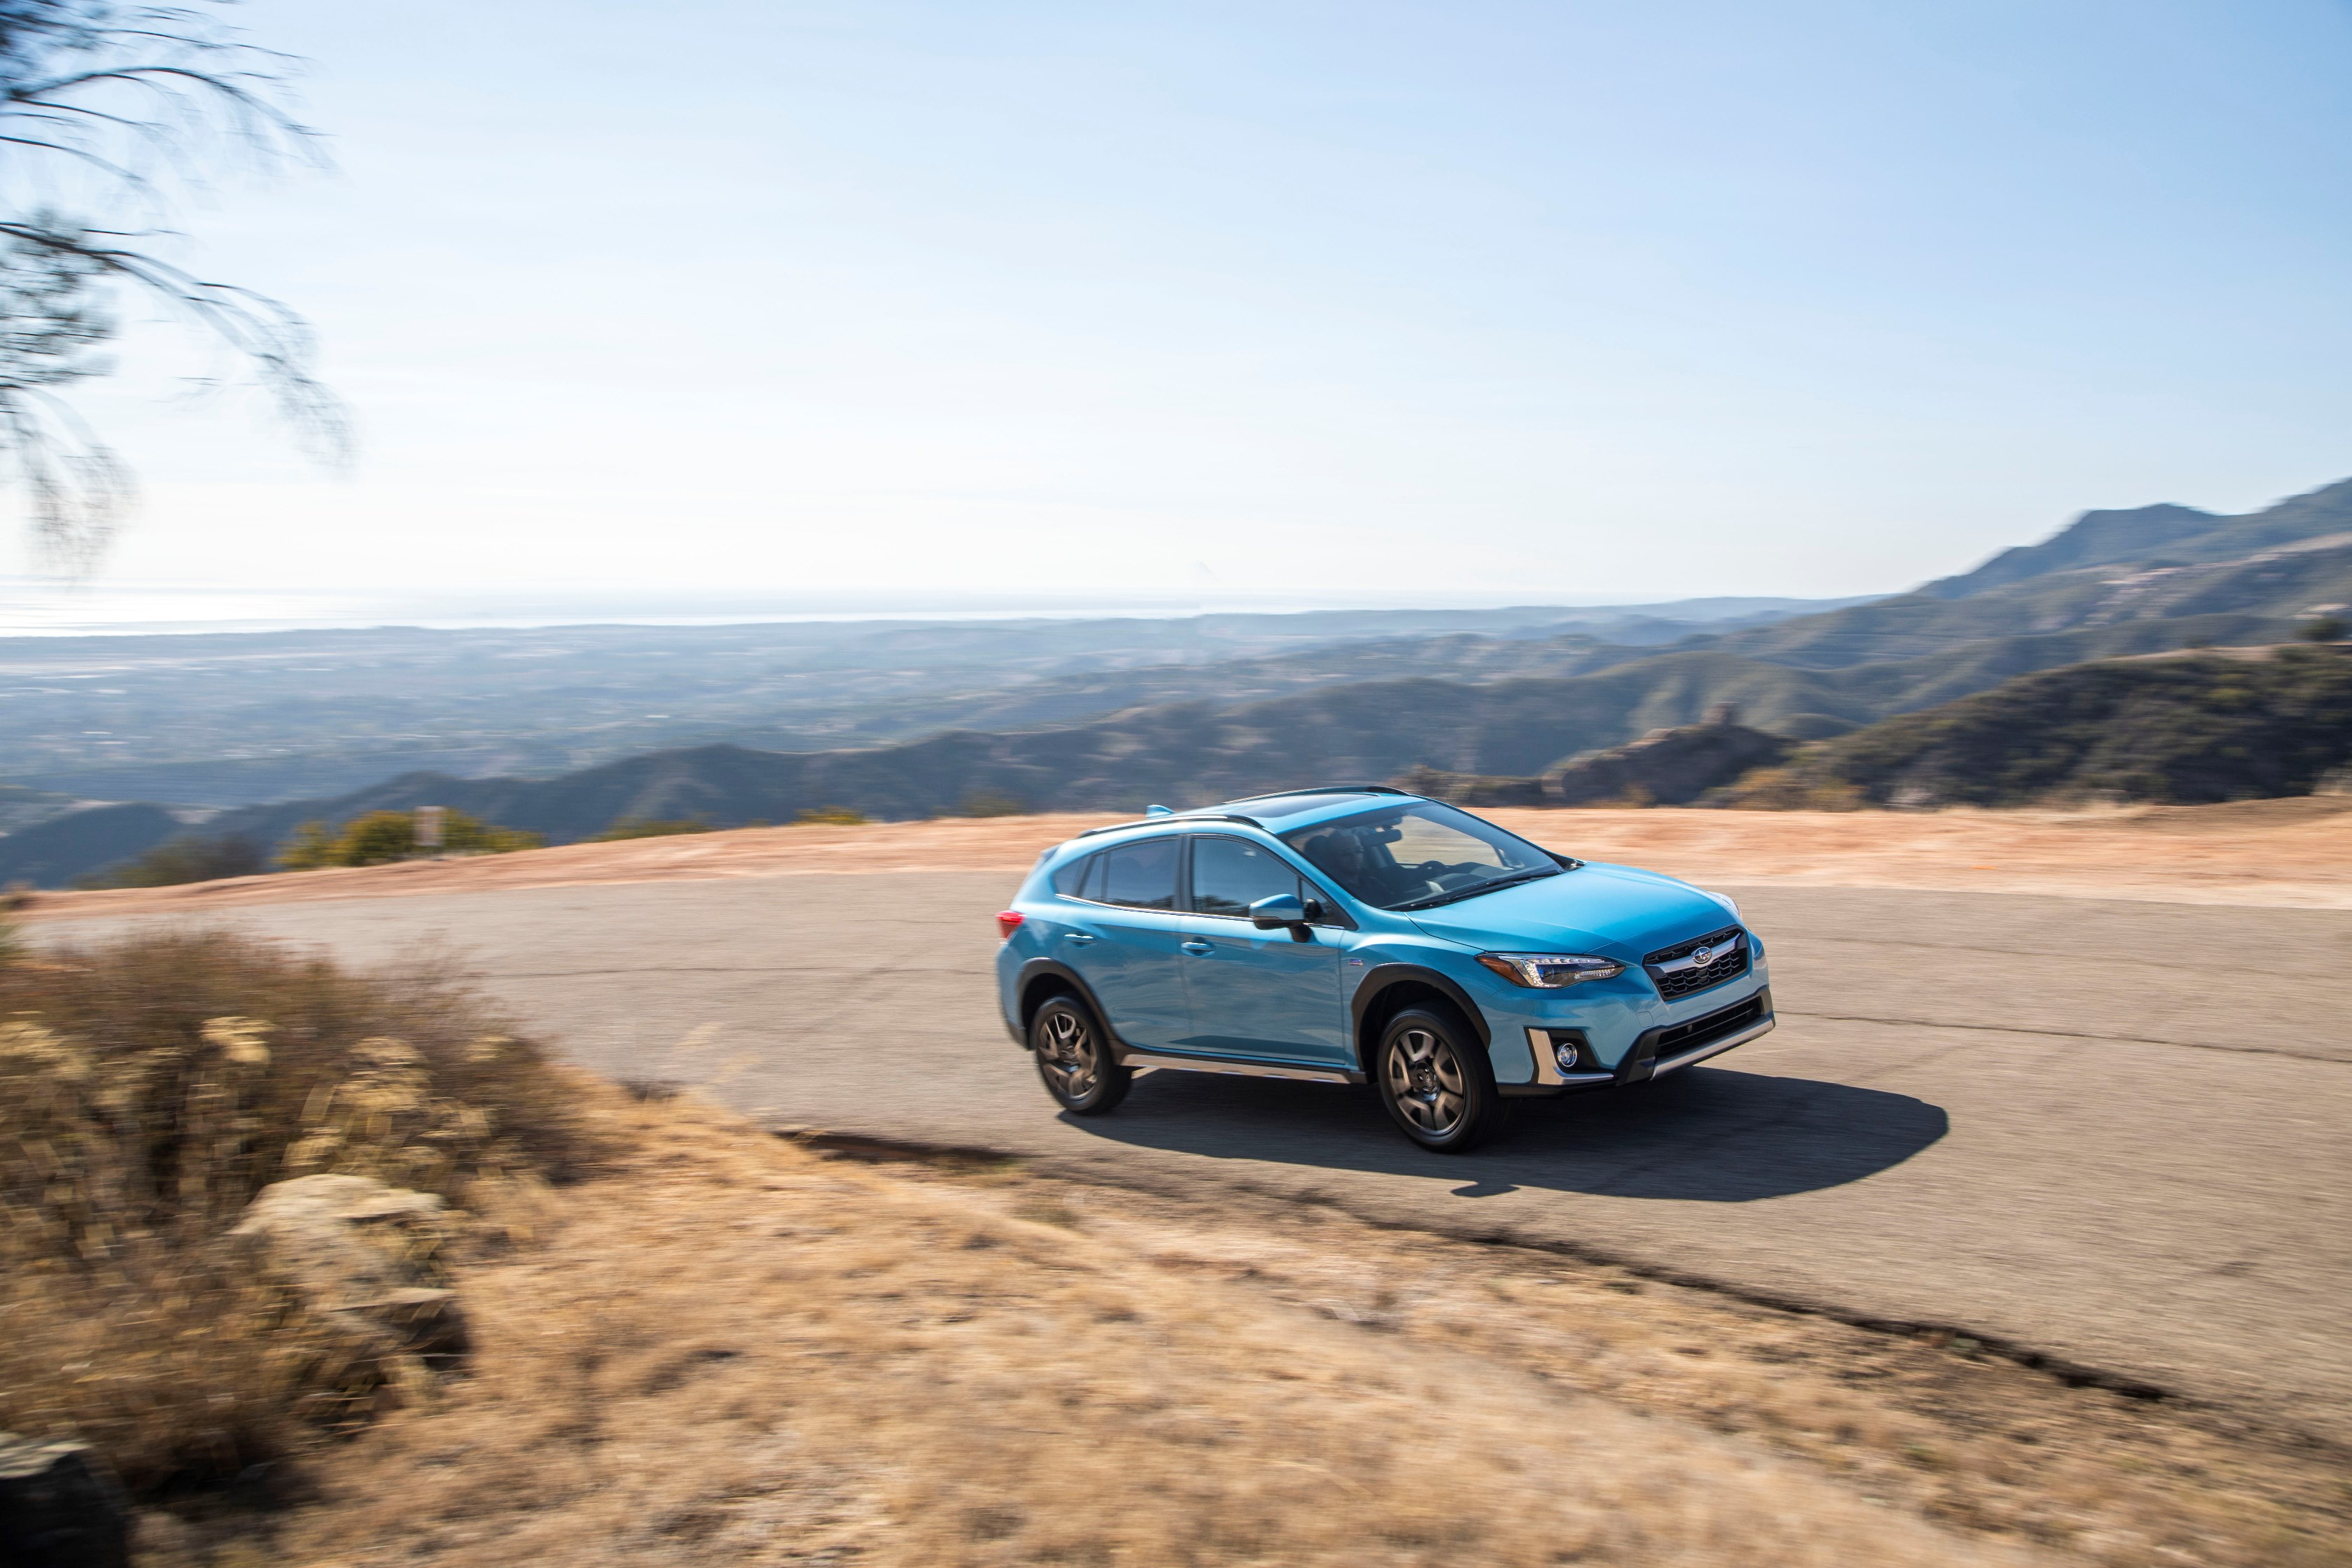 2019 subaru crosstrek hybrid can travel 17 miles in ev mode autoevolution. Black Bedroom Furniture Sets. Home Design Ideas